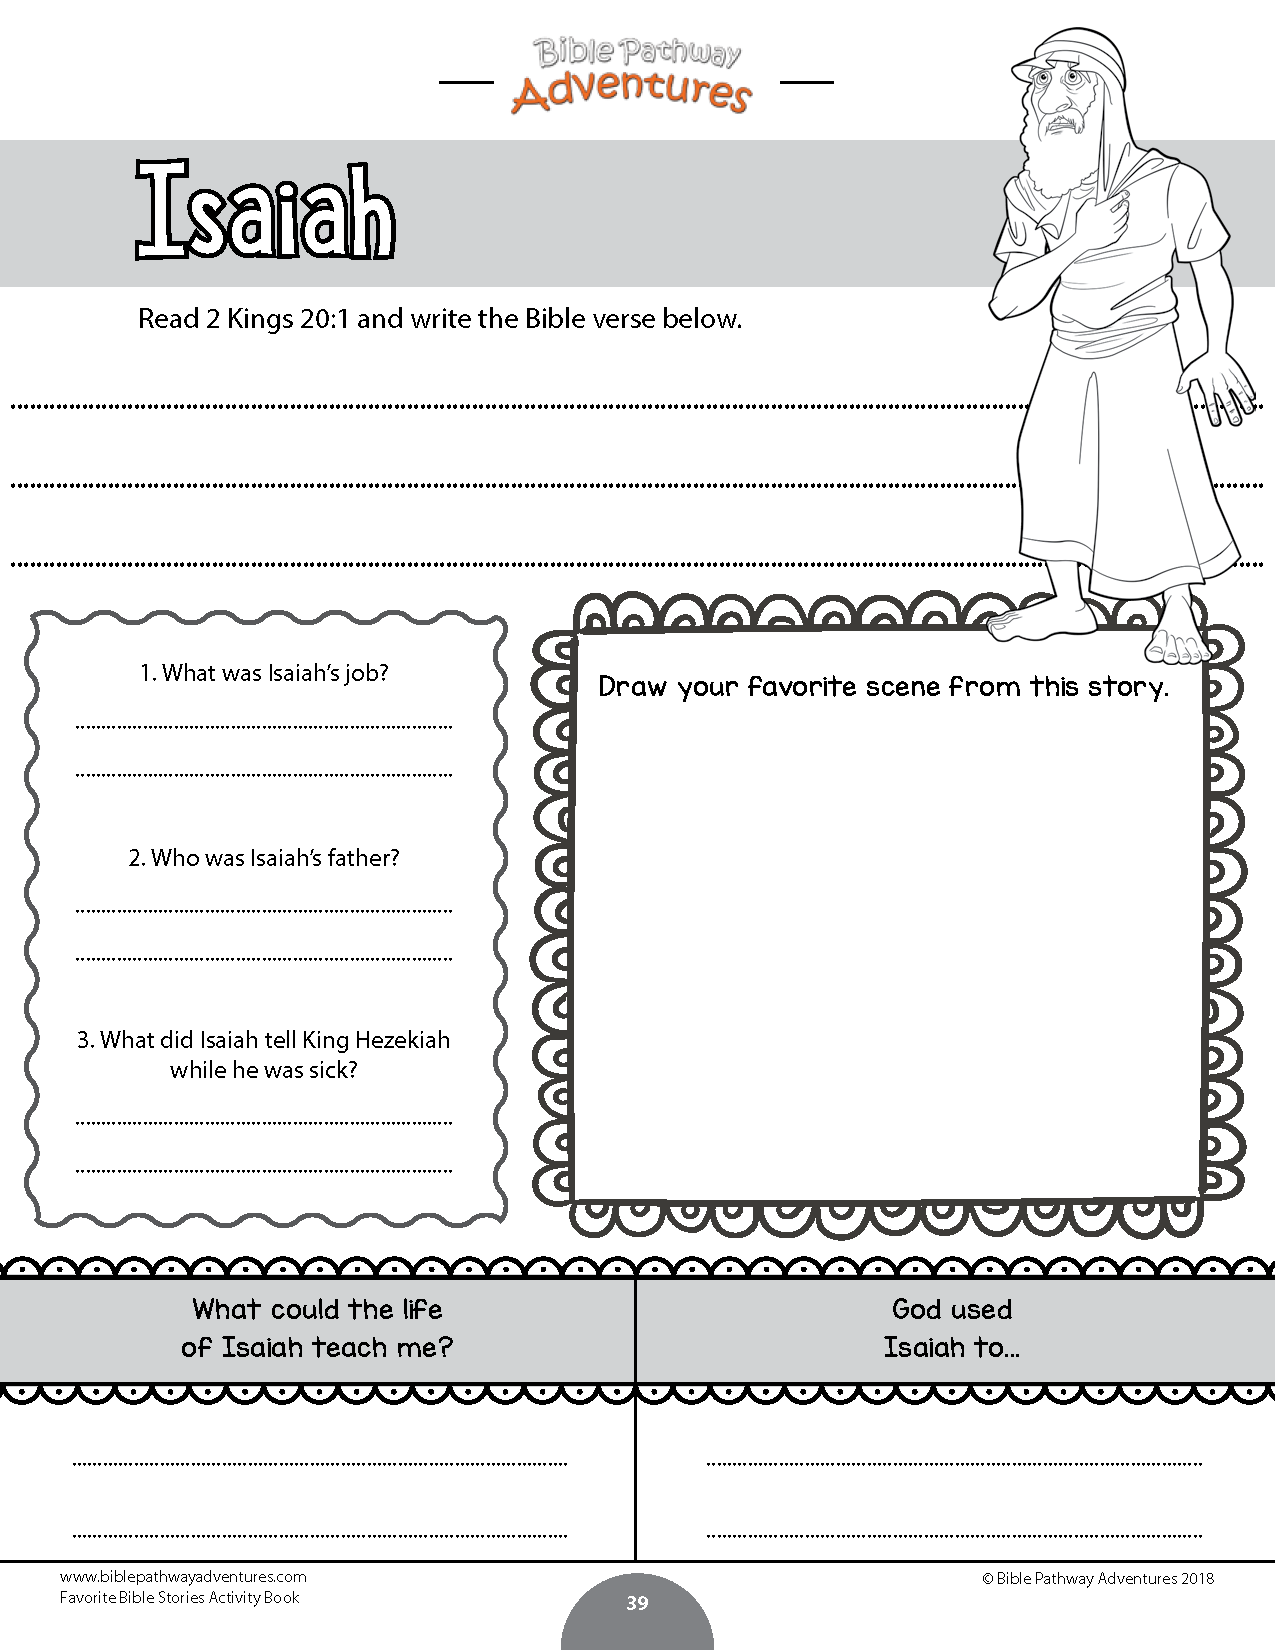 Favorite Bible Stories Coloring Activity Book